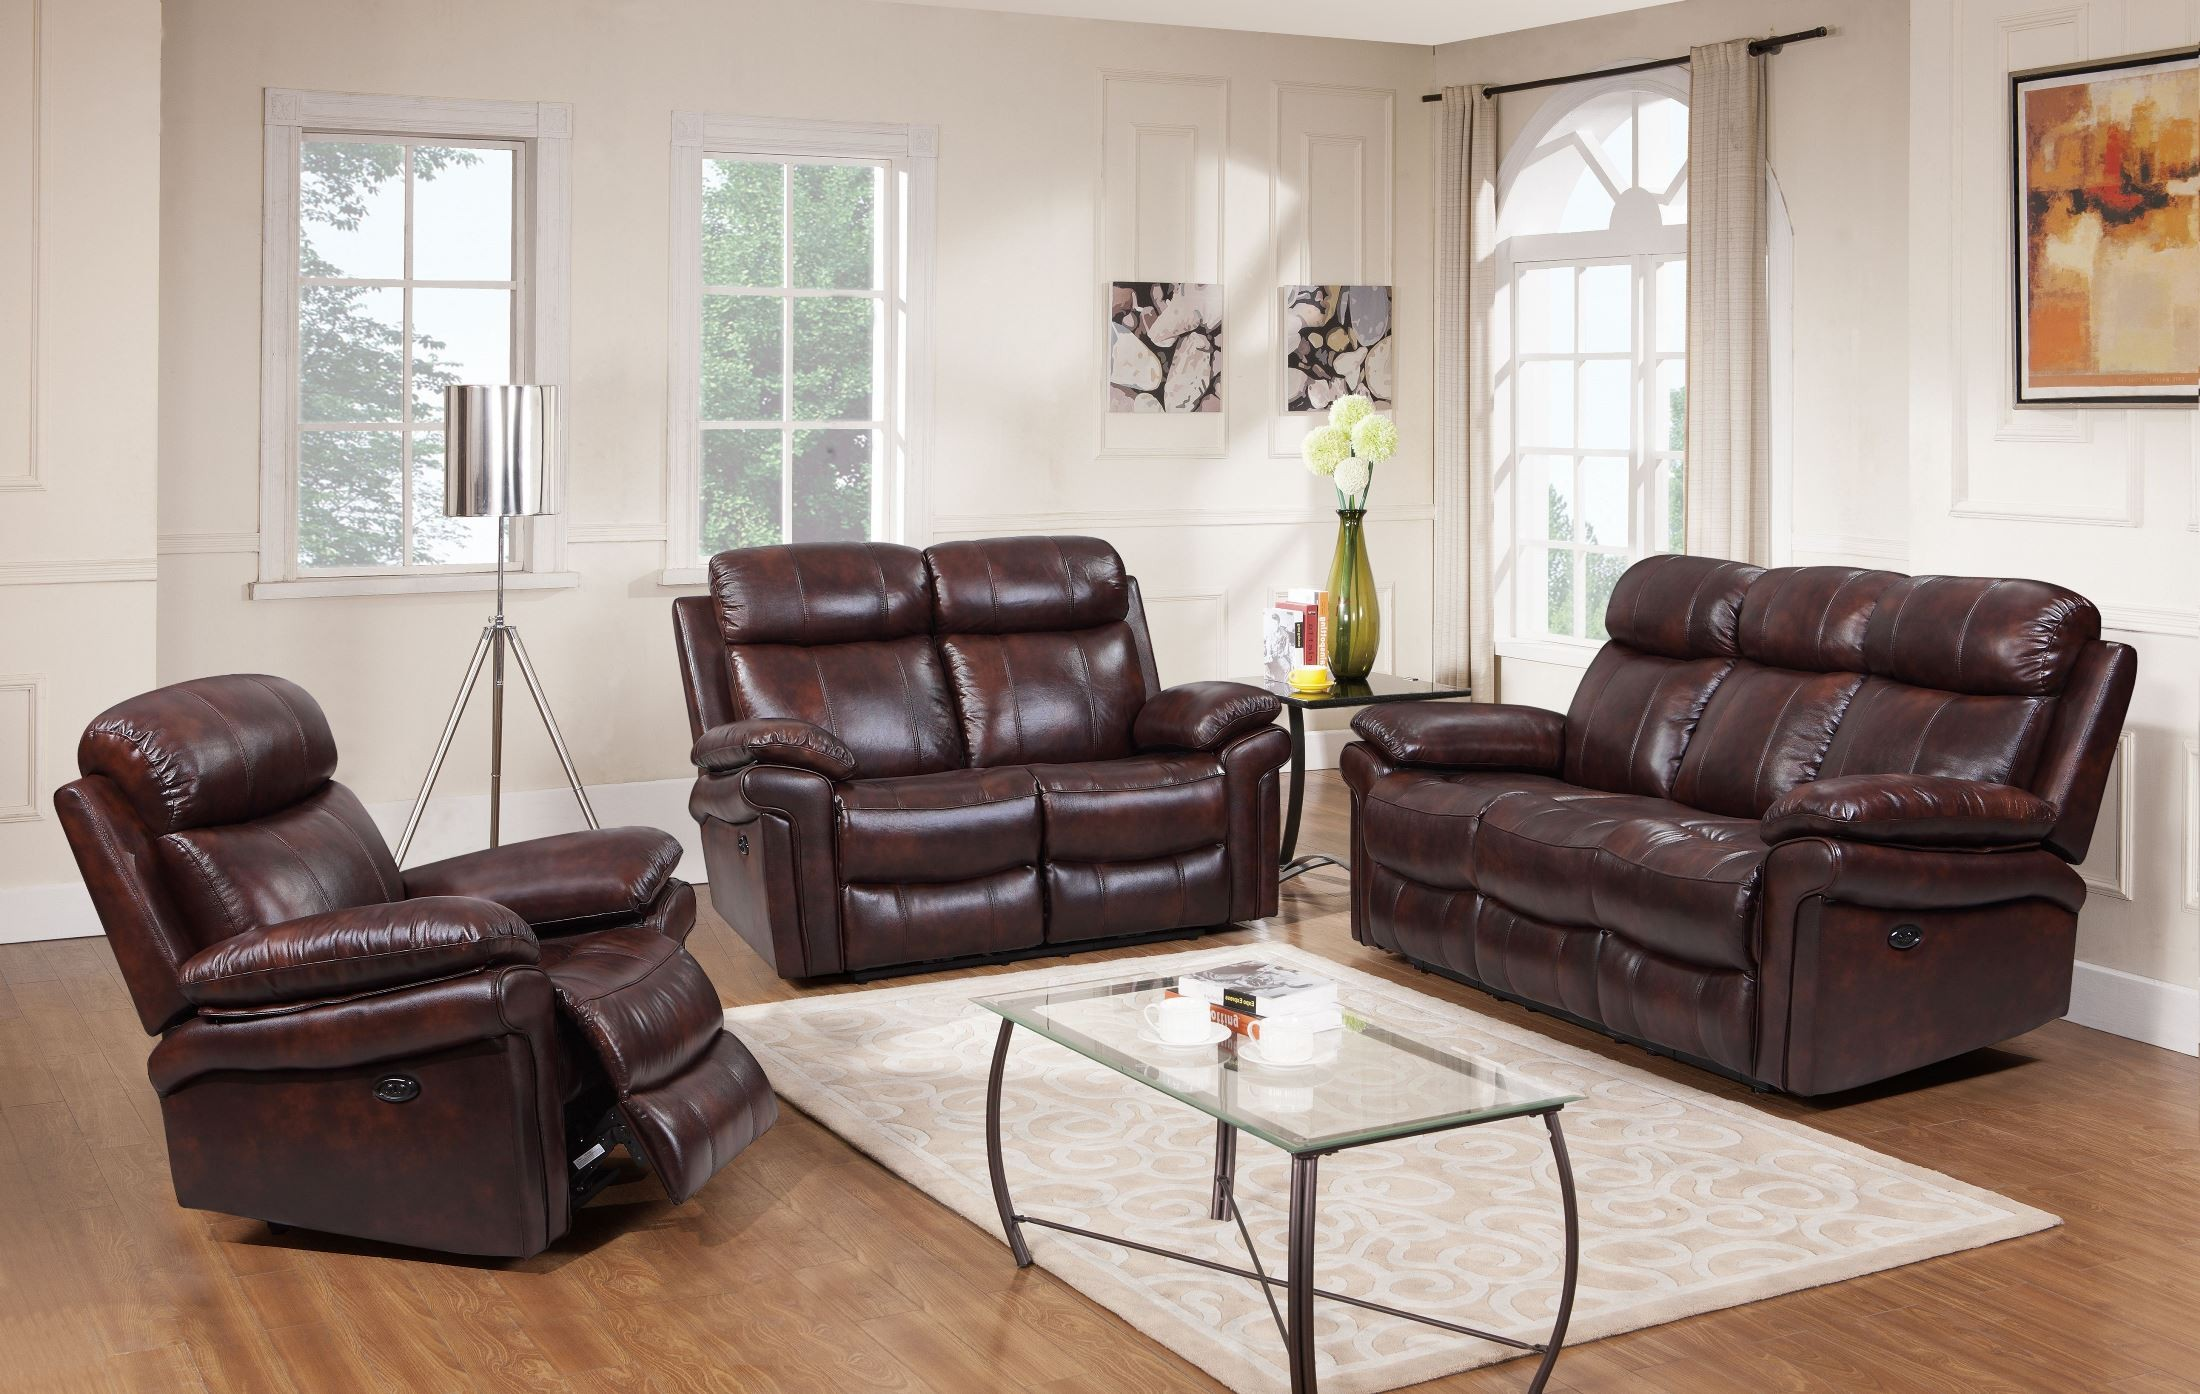 shae joplin brown leather power reclining living room set from luxe leather coleman furniture. Black Bedroom Furniture Sets. Home Design Ideas